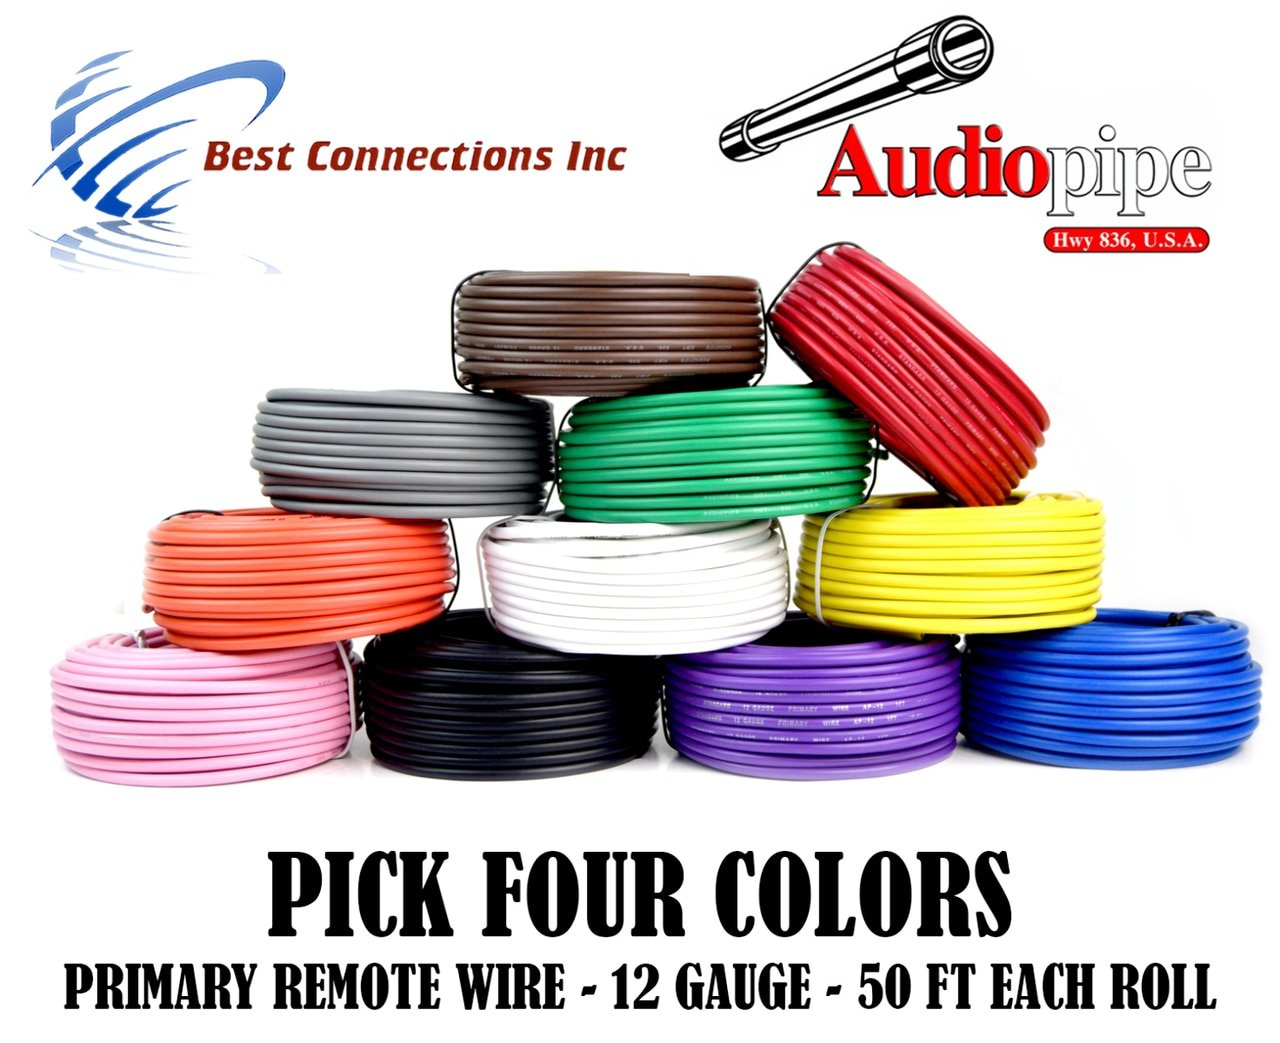 12 GA GAUGE 50 FT ROLLS PRIMARY AUTO REMOTE POWER GROUND WIRE CABLE (4 COLORS)